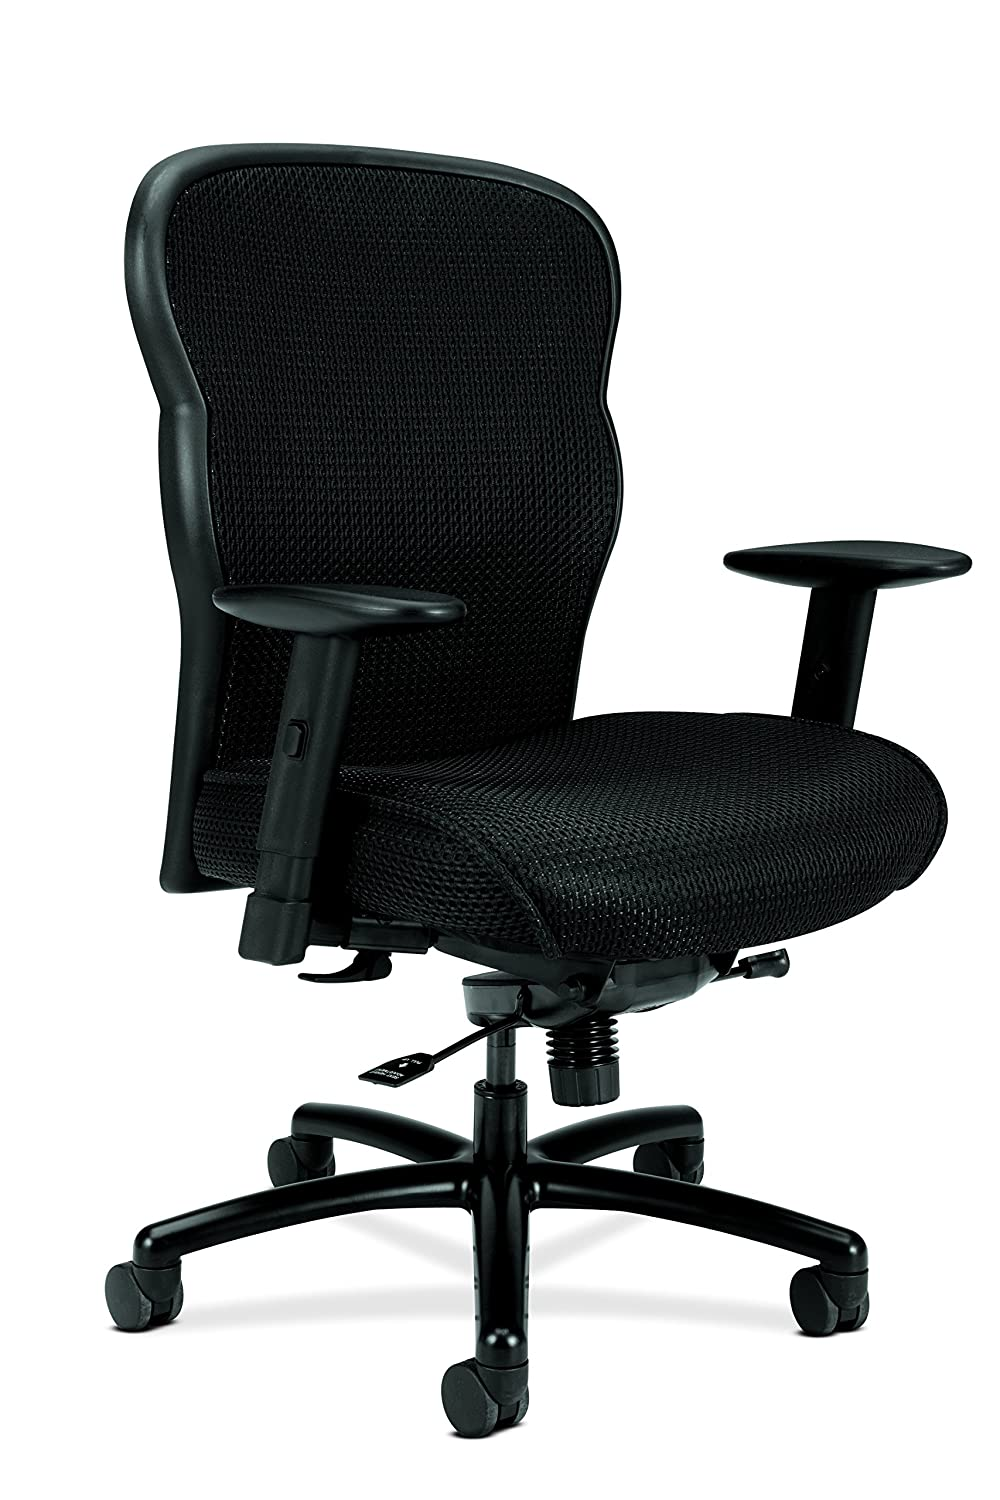 computer chairs for large people